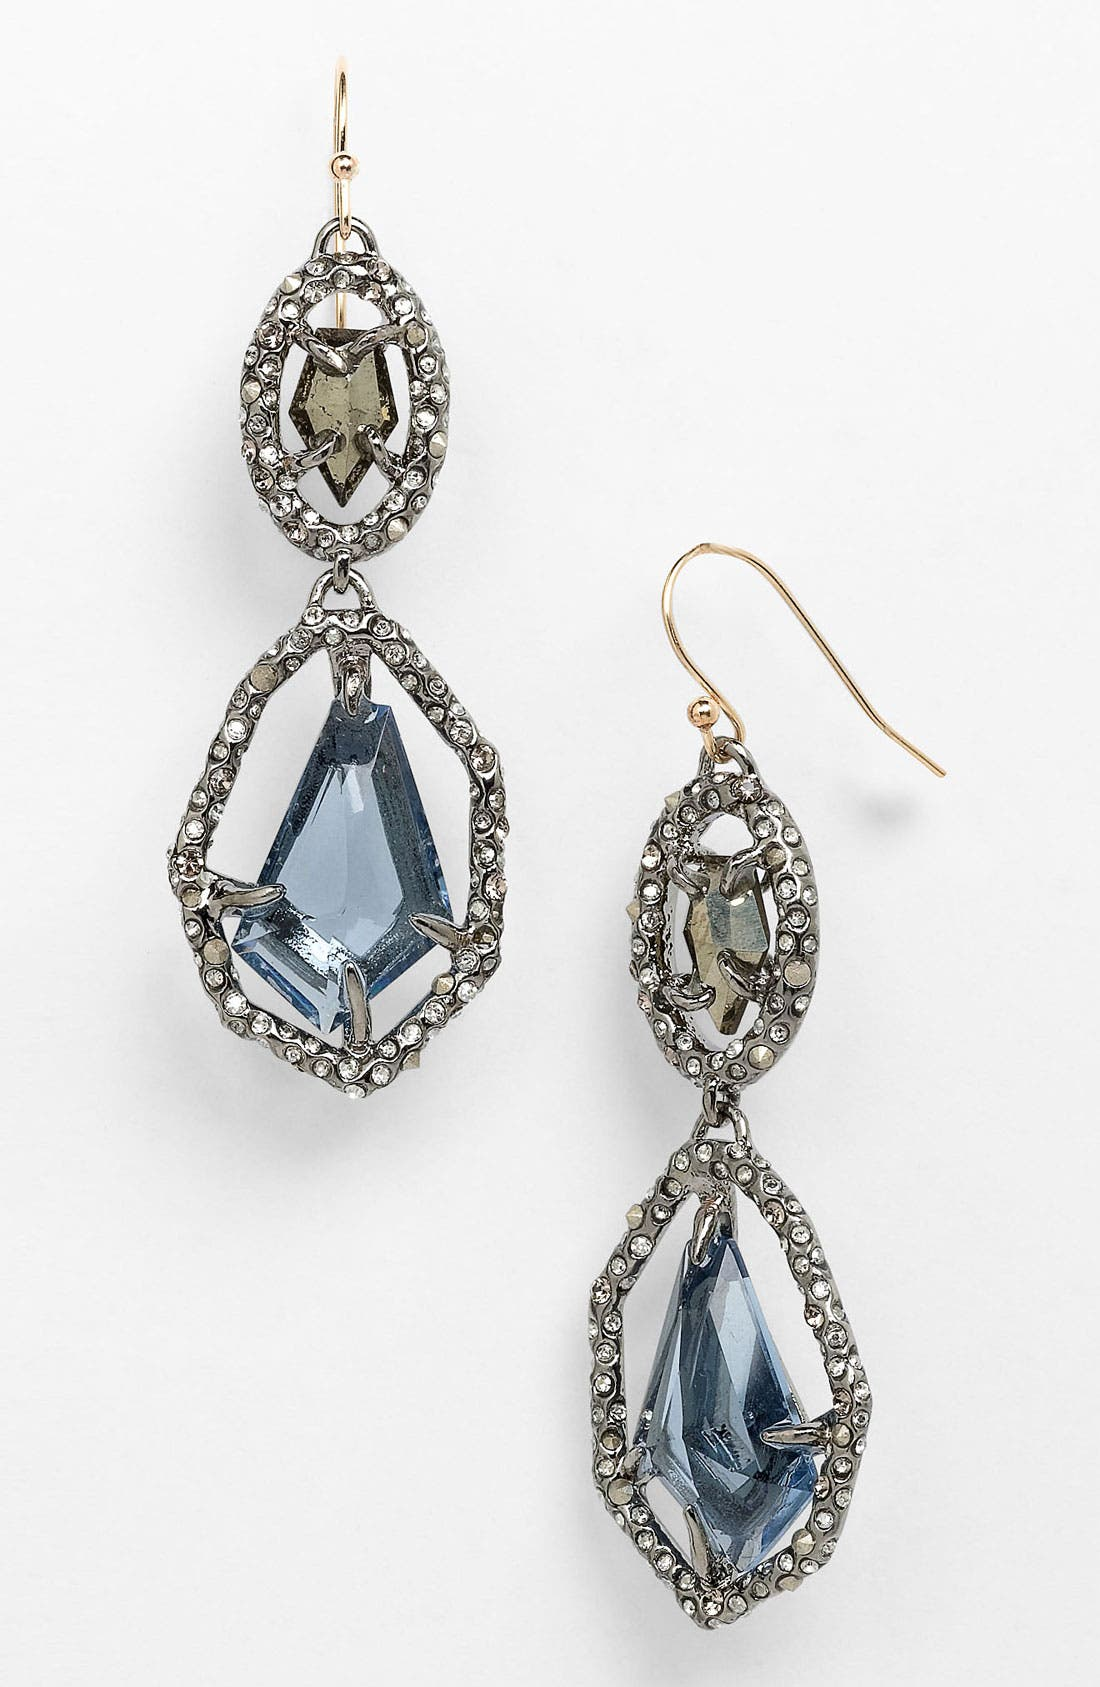 Alternate Image 1 Selected - Alexis Bittar 'Miss Havisham - Delano' Deco Drop Earrings (Nordstrom Exclusive)